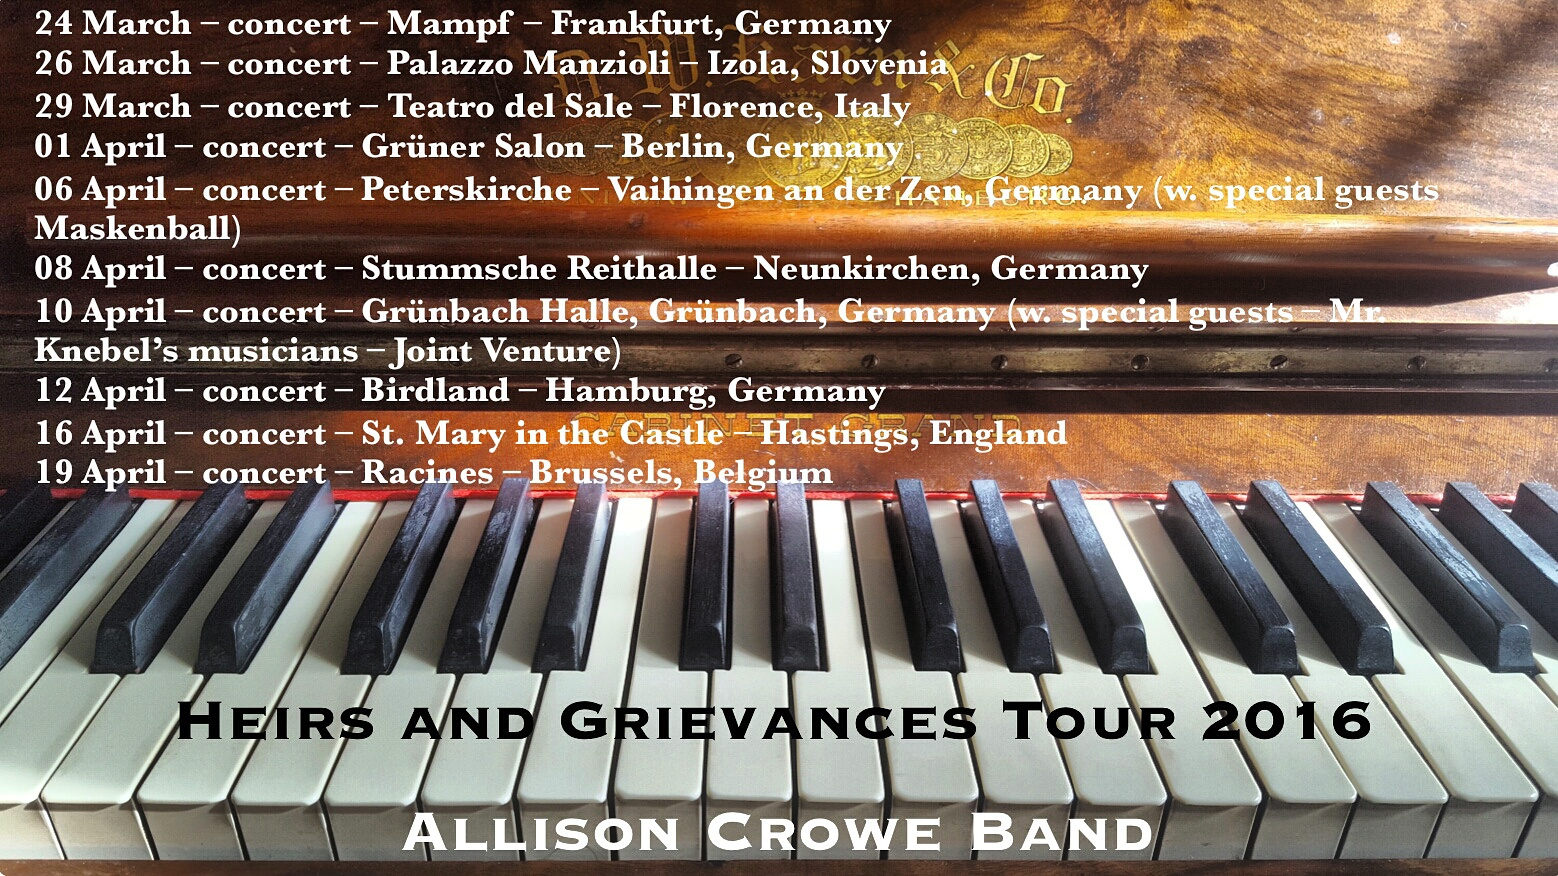 Heirs + Grievances Tournee 2016 - Allison Crowe and Band